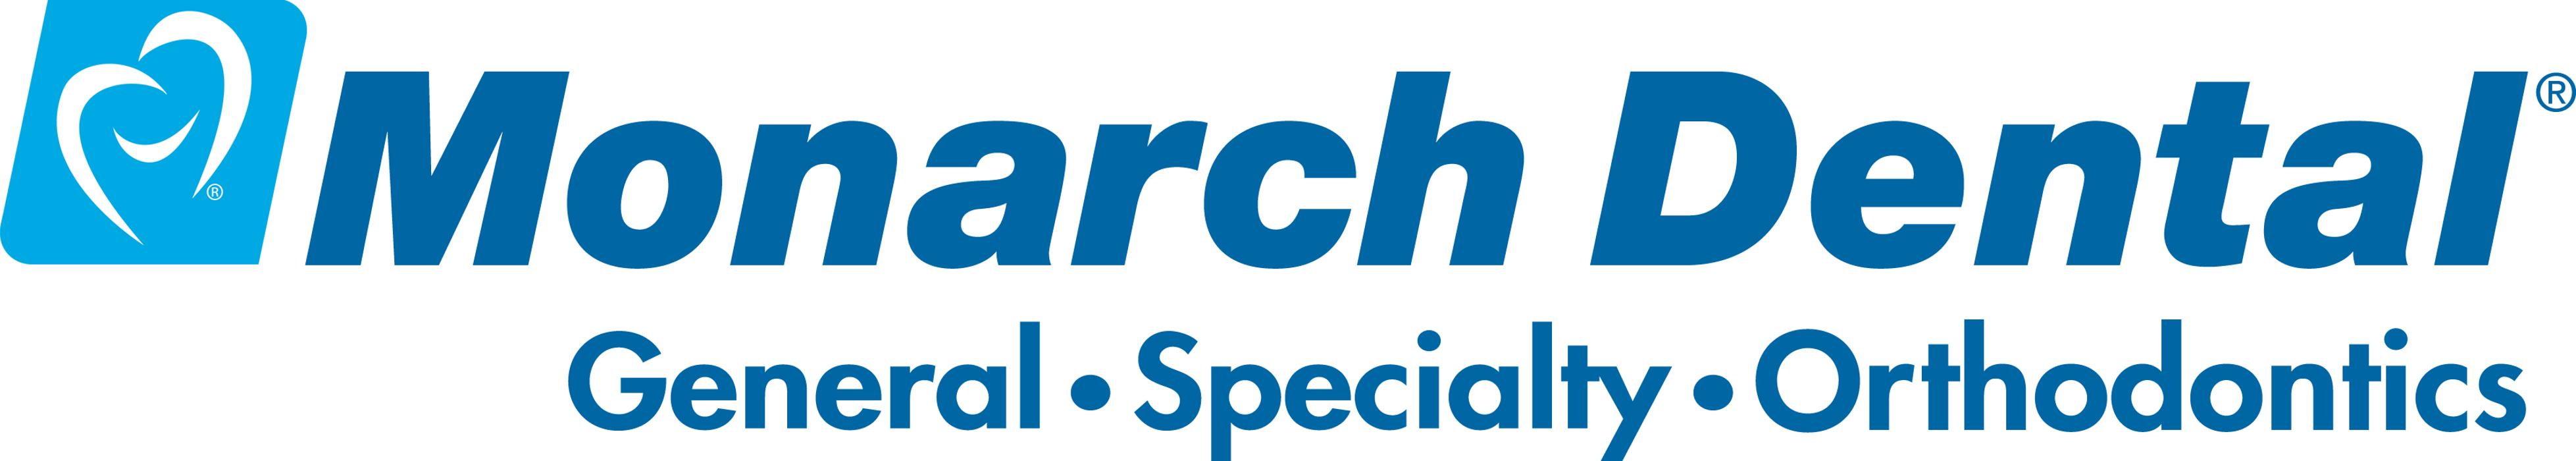 Monarch Dental - North Richland Hills, TX